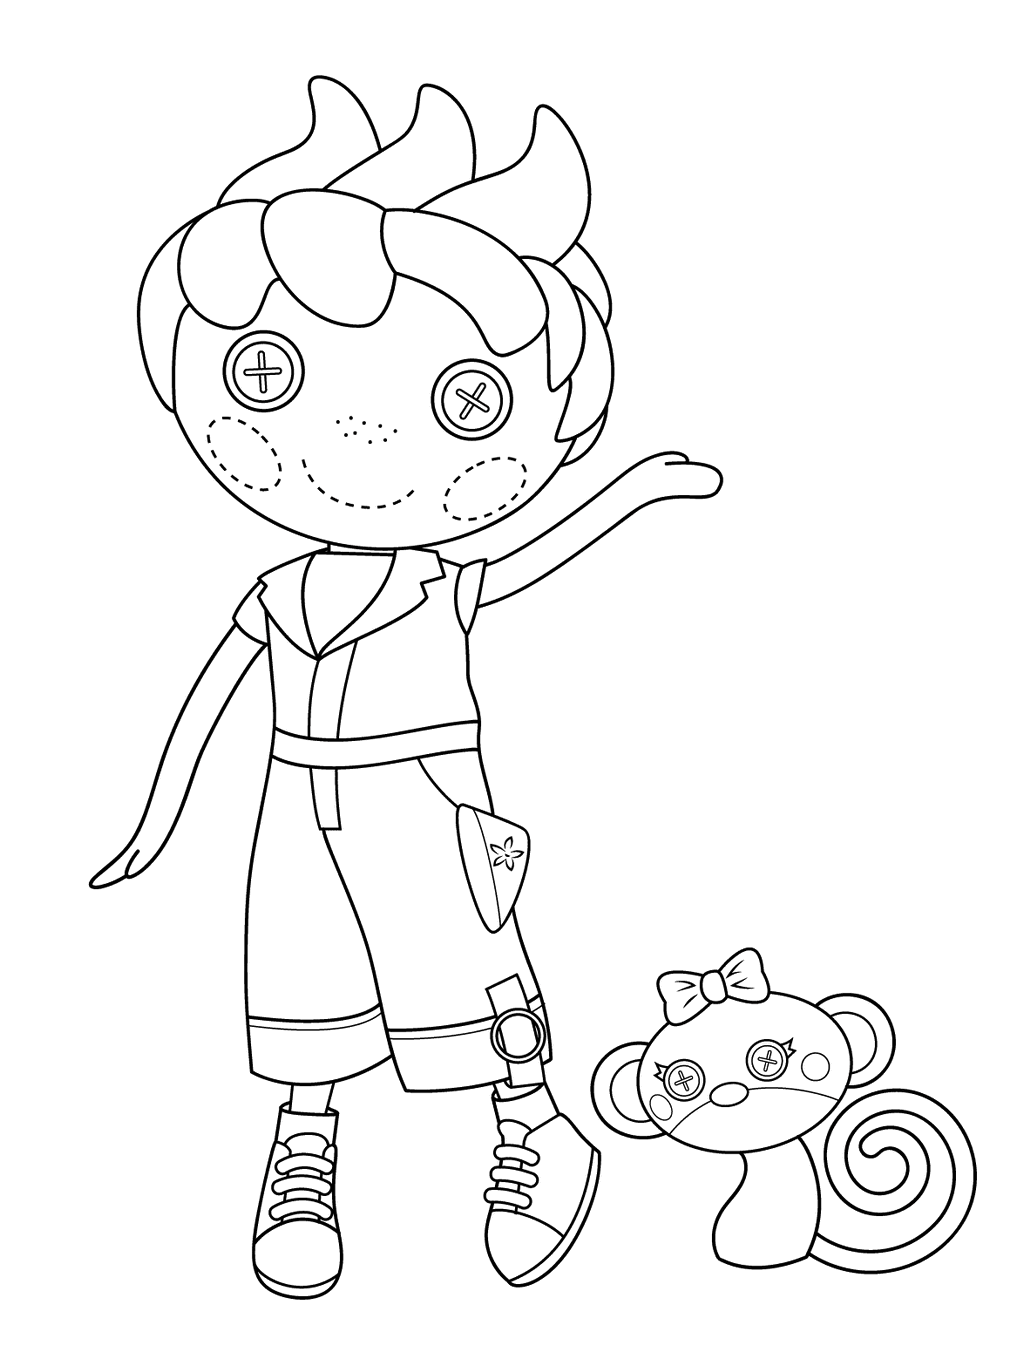 lalaloopsy coloring page ace fender bender main character coloring | Disney coloring  pages, Cinderella coloring pages, Mermaid coloring pages